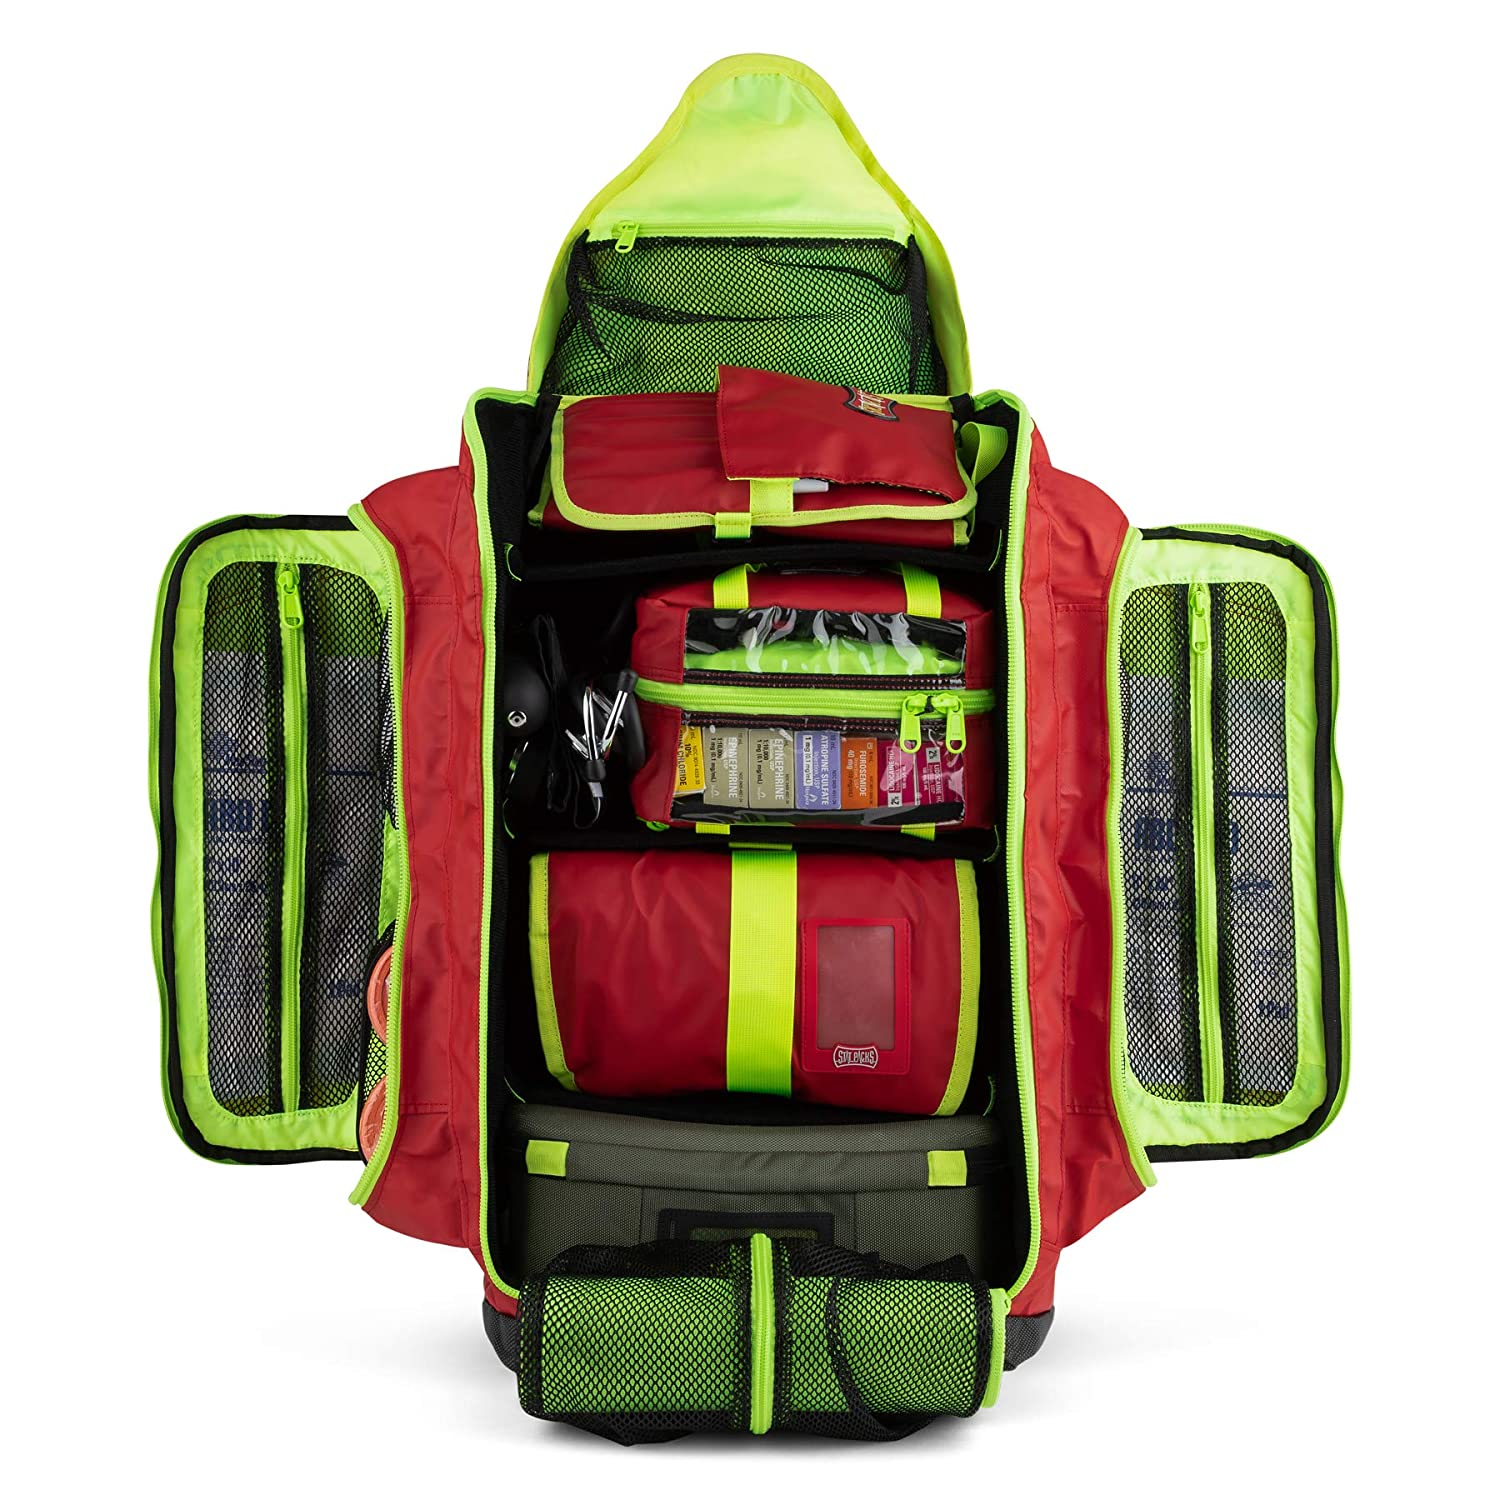 Compartmentalisation of the medical rescue backpack, Statpacks G3 backup red